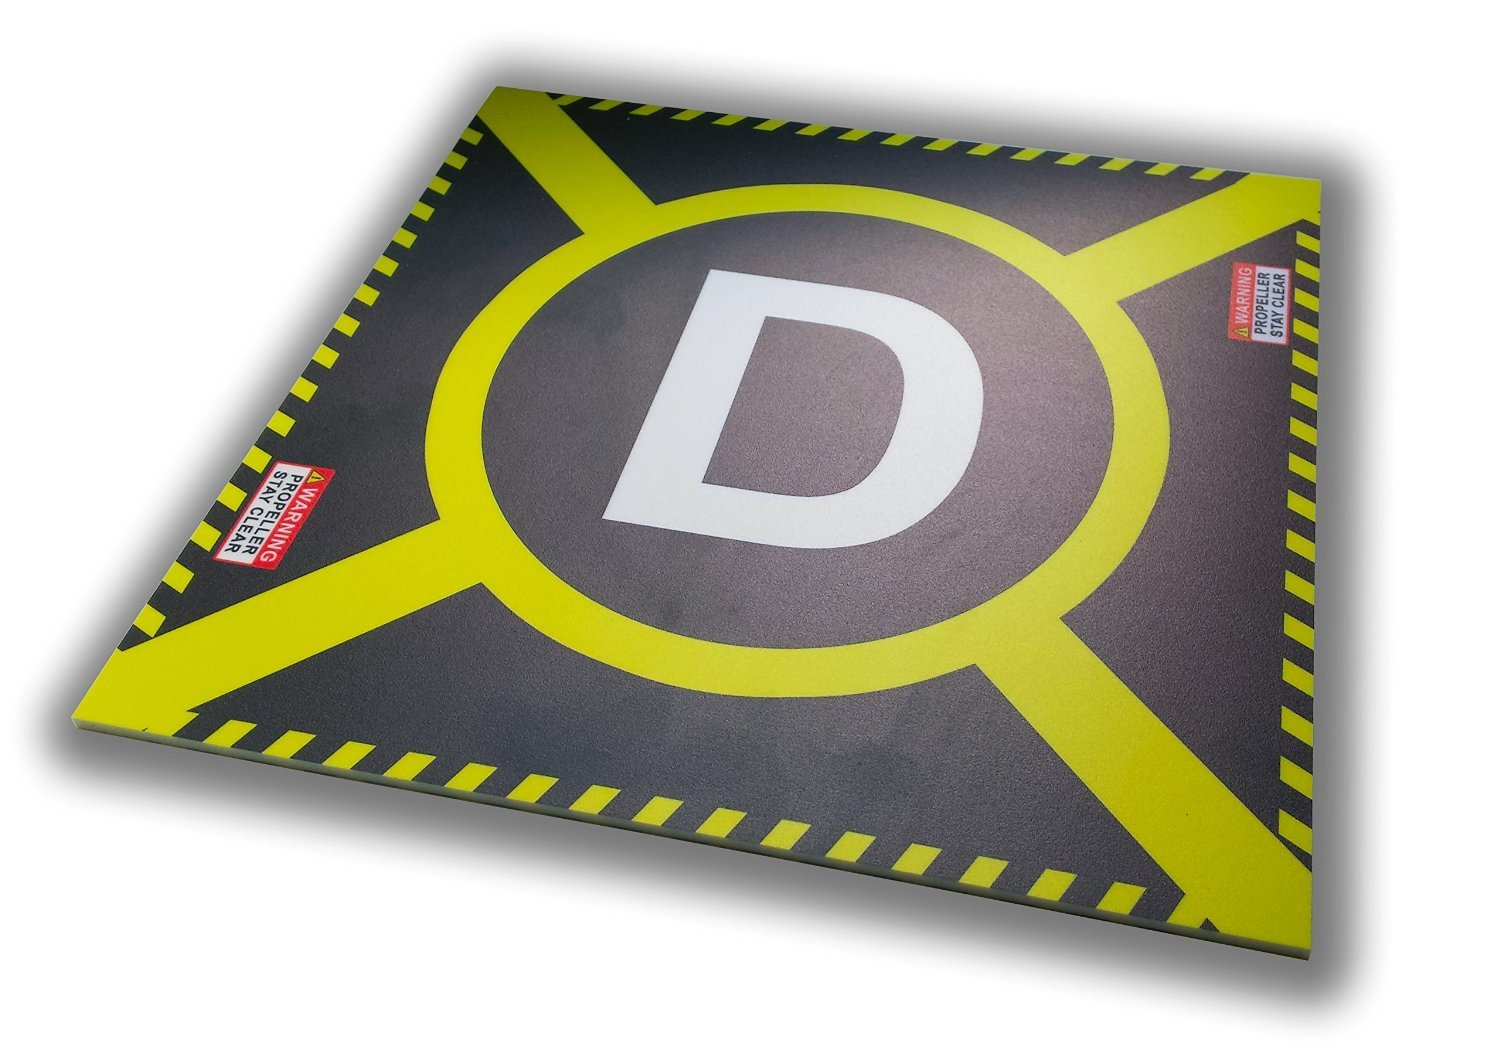 Droneport-Drone/Quadcopter Landing Pad